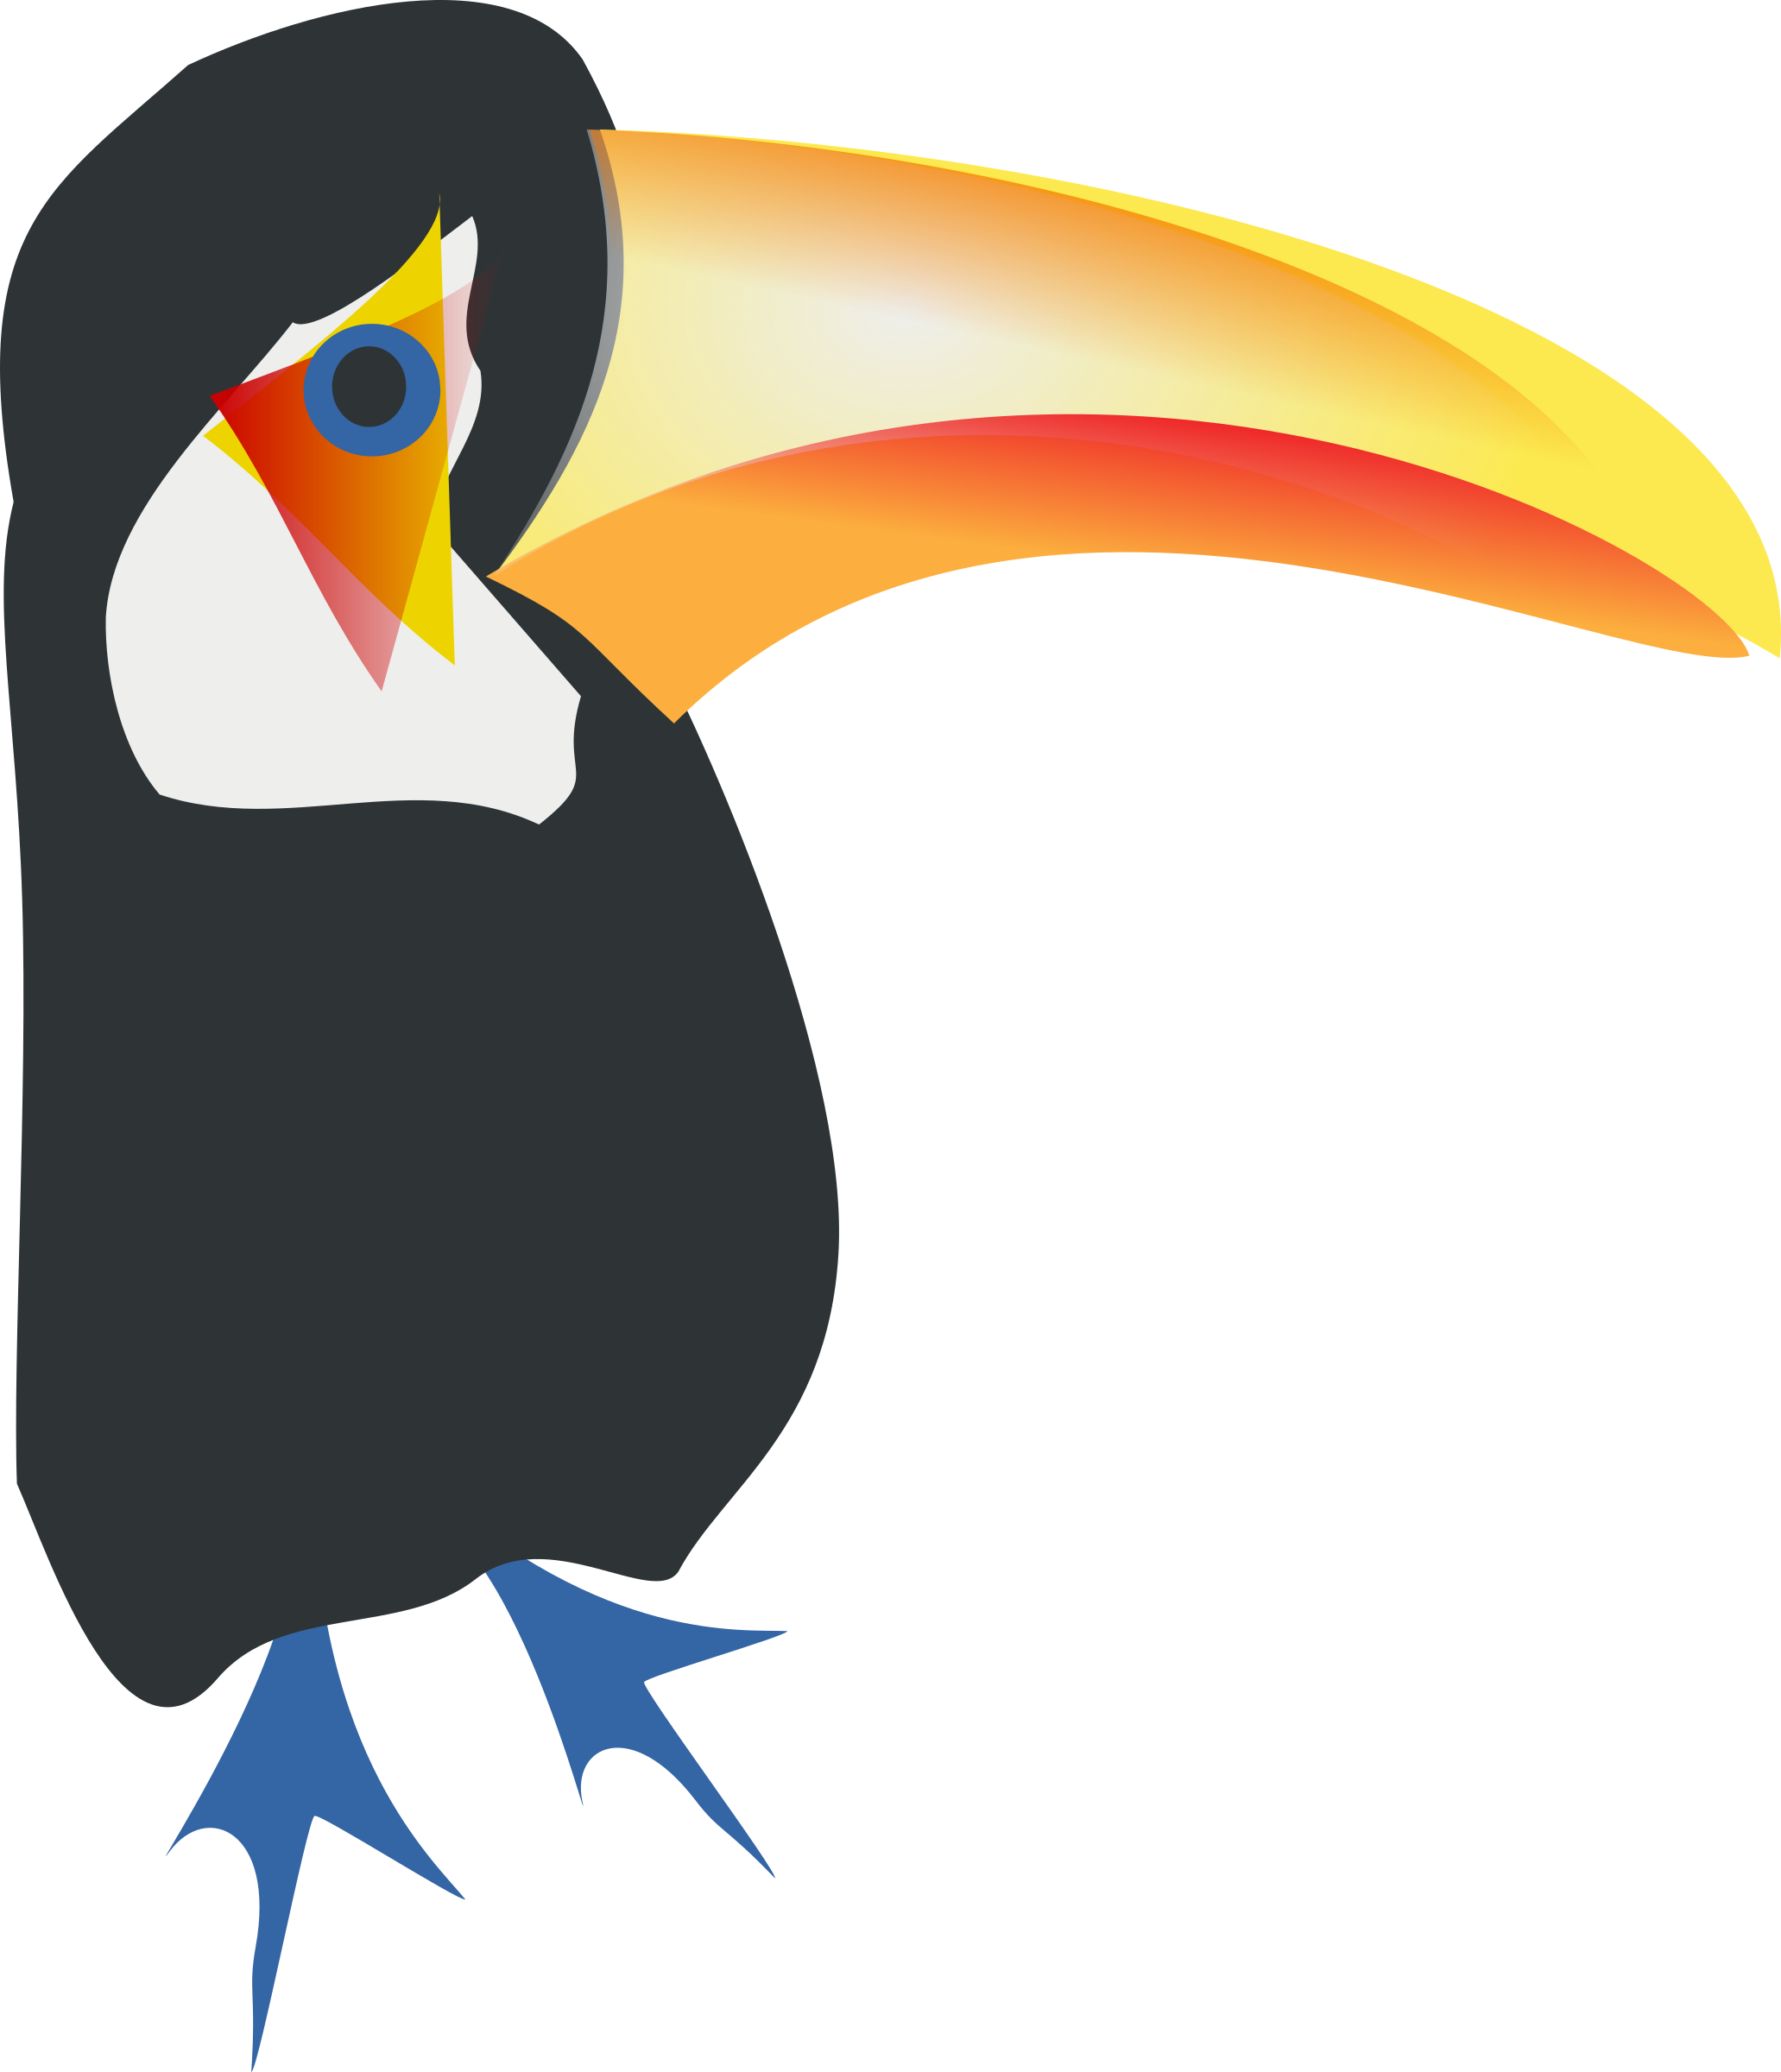 toucan toco by chatard